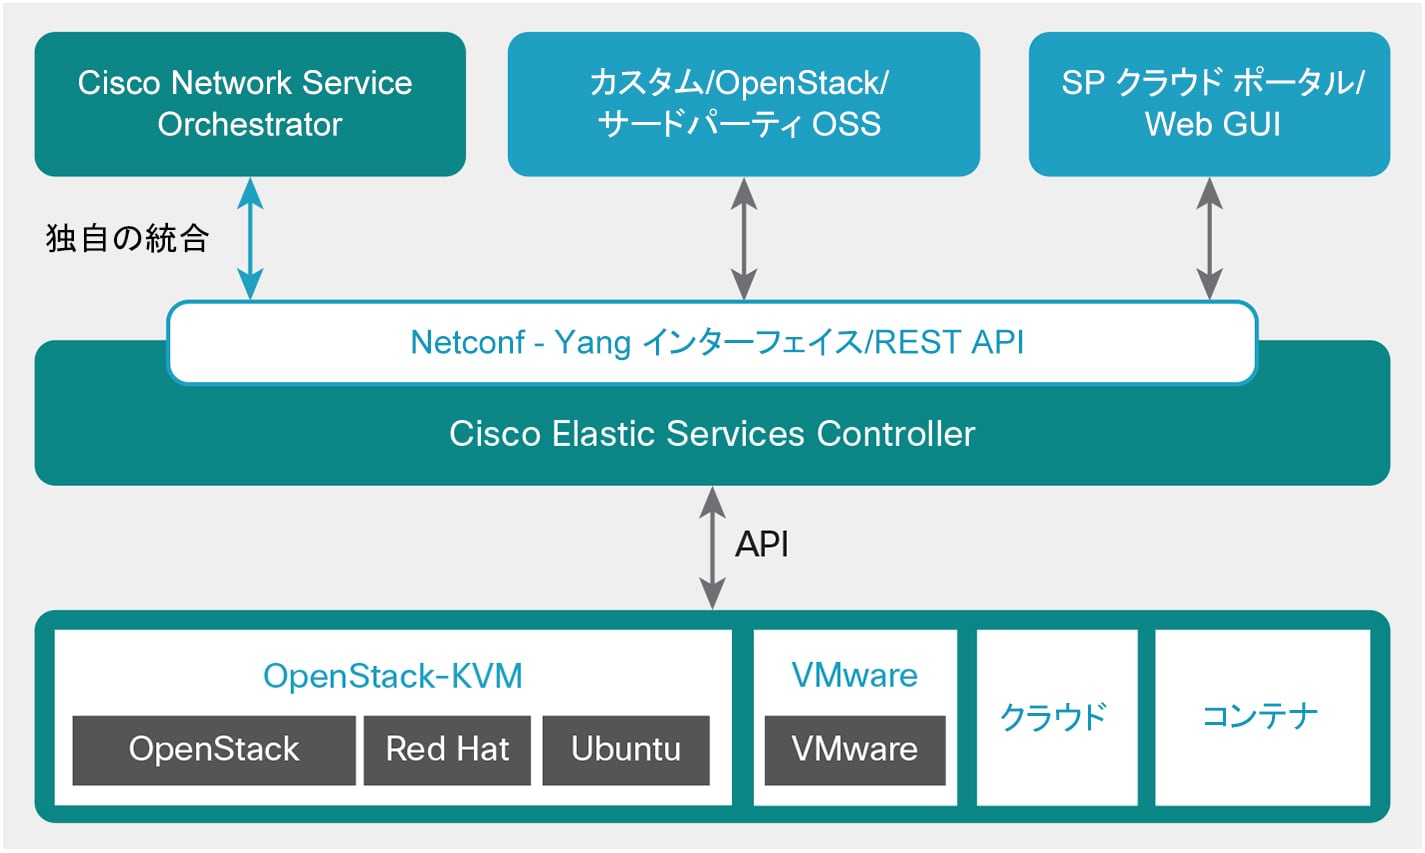 cisco paper Morning im in the process of gathering white papers on routing protocols etc should i be looking for white papers on genertic subjets such as ospf,eigpr et 76337.